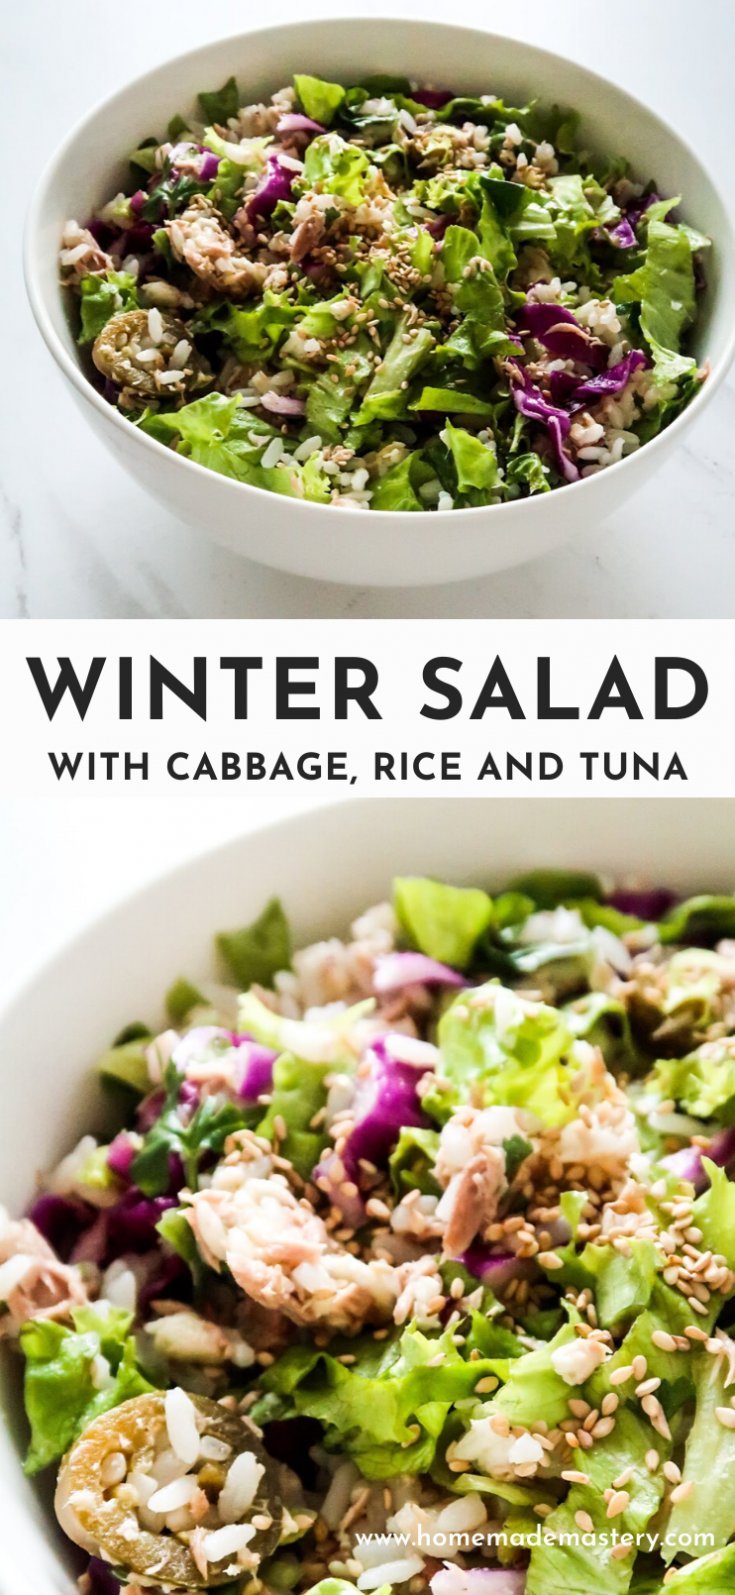 Healthy winter salad with rice, cabbage and tuna! This delicious easy cabbage salad is a great way to get your vitamins and to stay healthy during winter! This is also a great healthy cold lunch to bring to work, if you don't have microwave. This chopped salad is gluten-free and high in protein.